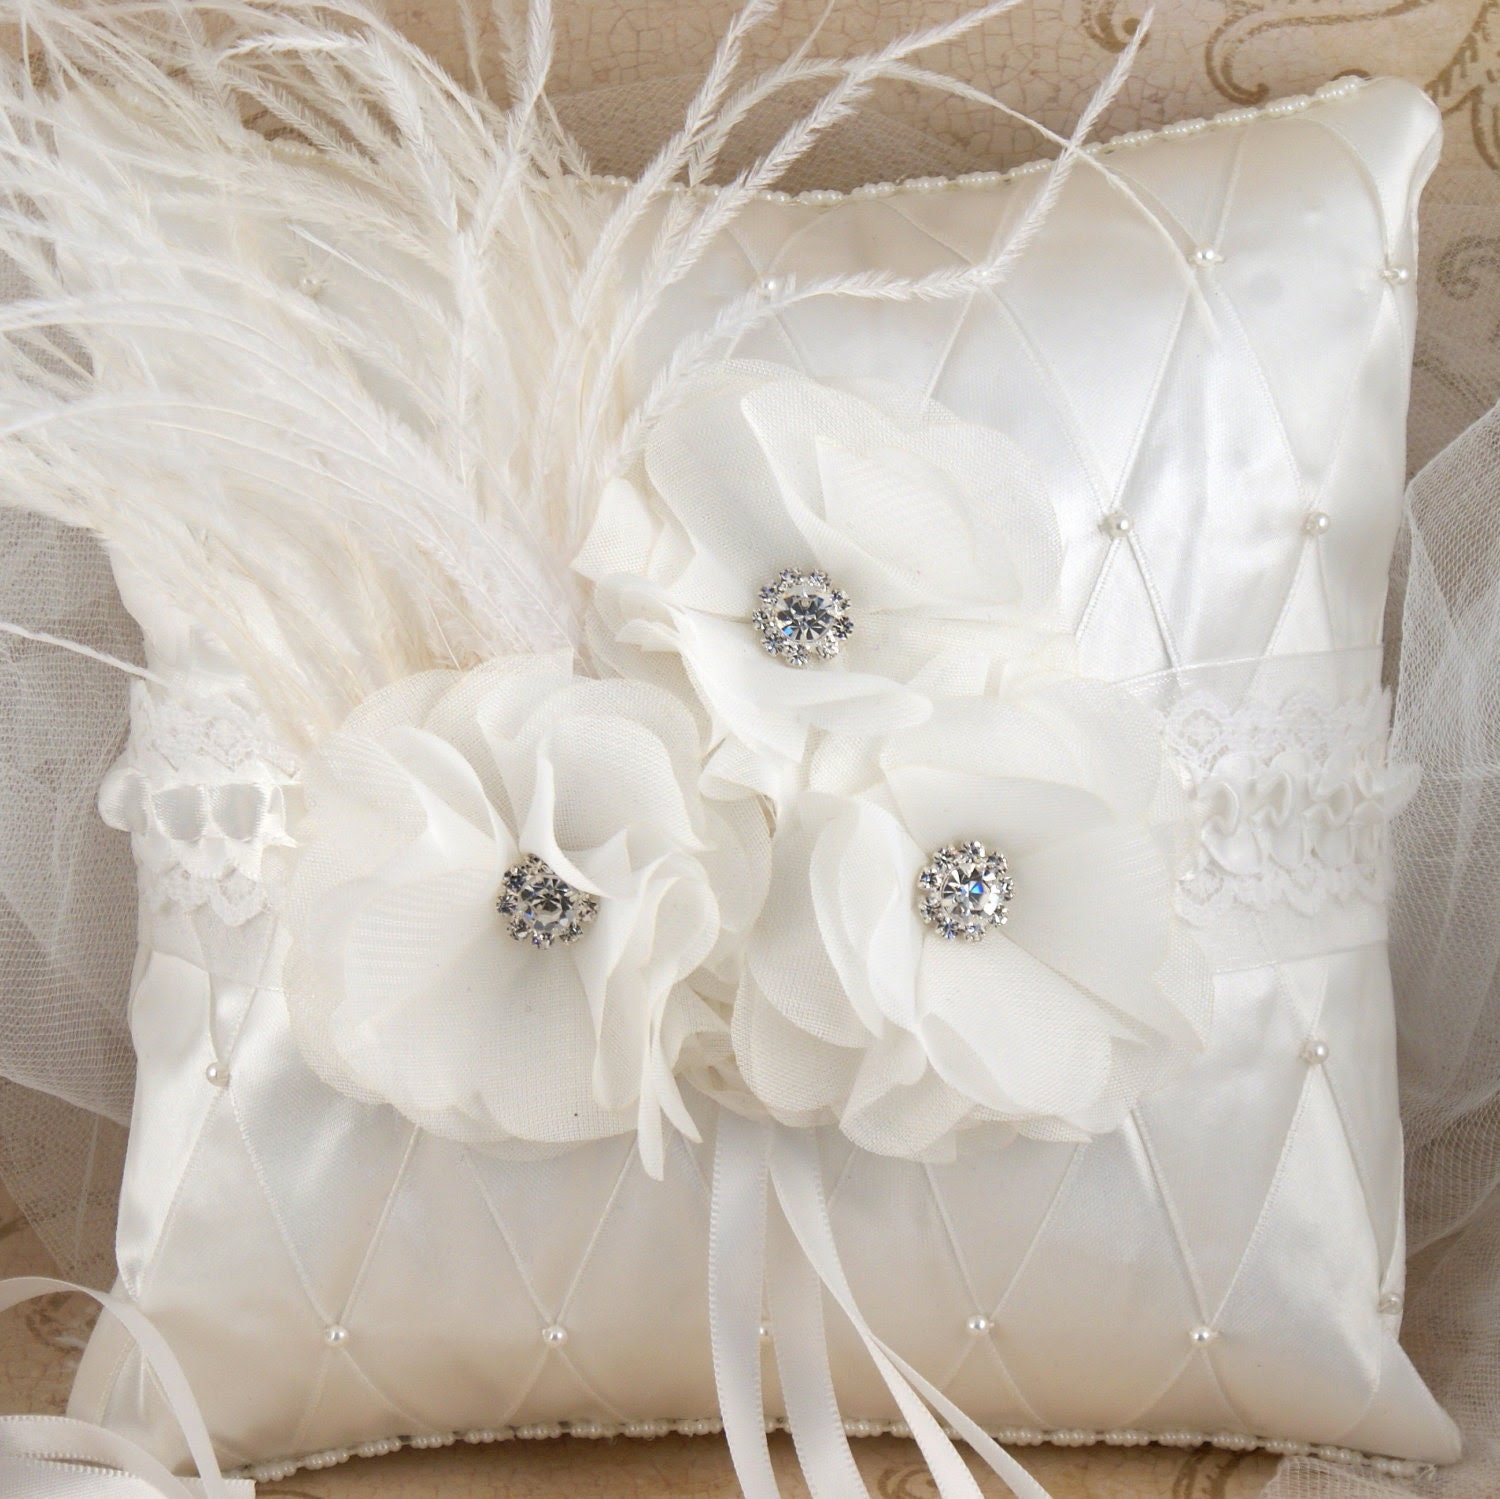 Ring Bearer Pillow in White and Off-White with Chiffon Flowers, Pearls, Ostrich Feathers and Jewels